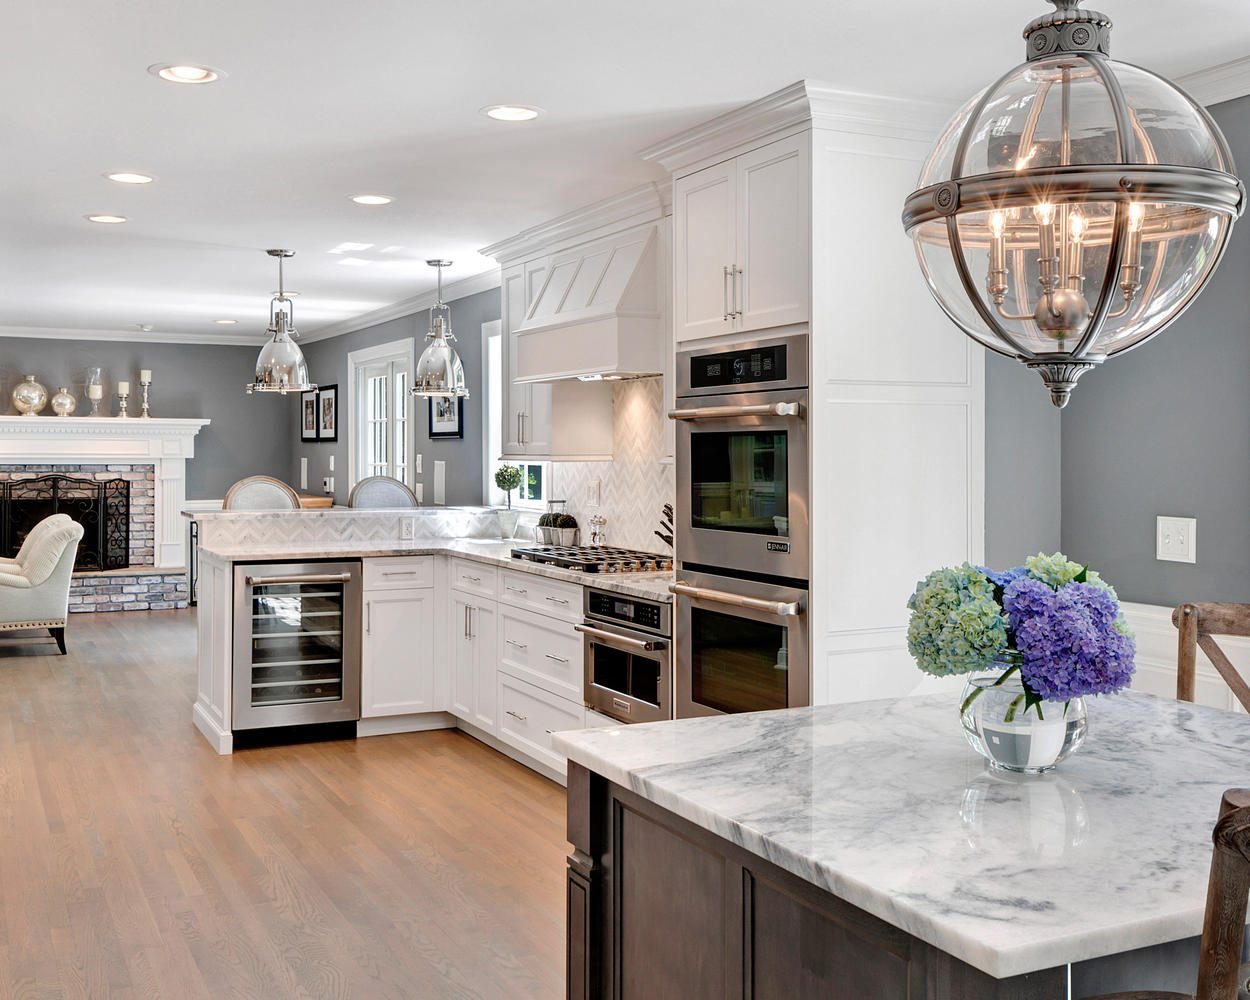 Timeless grey and white kitchen middletown new jersey by design line kitchens for Beautiful small kitchen designs